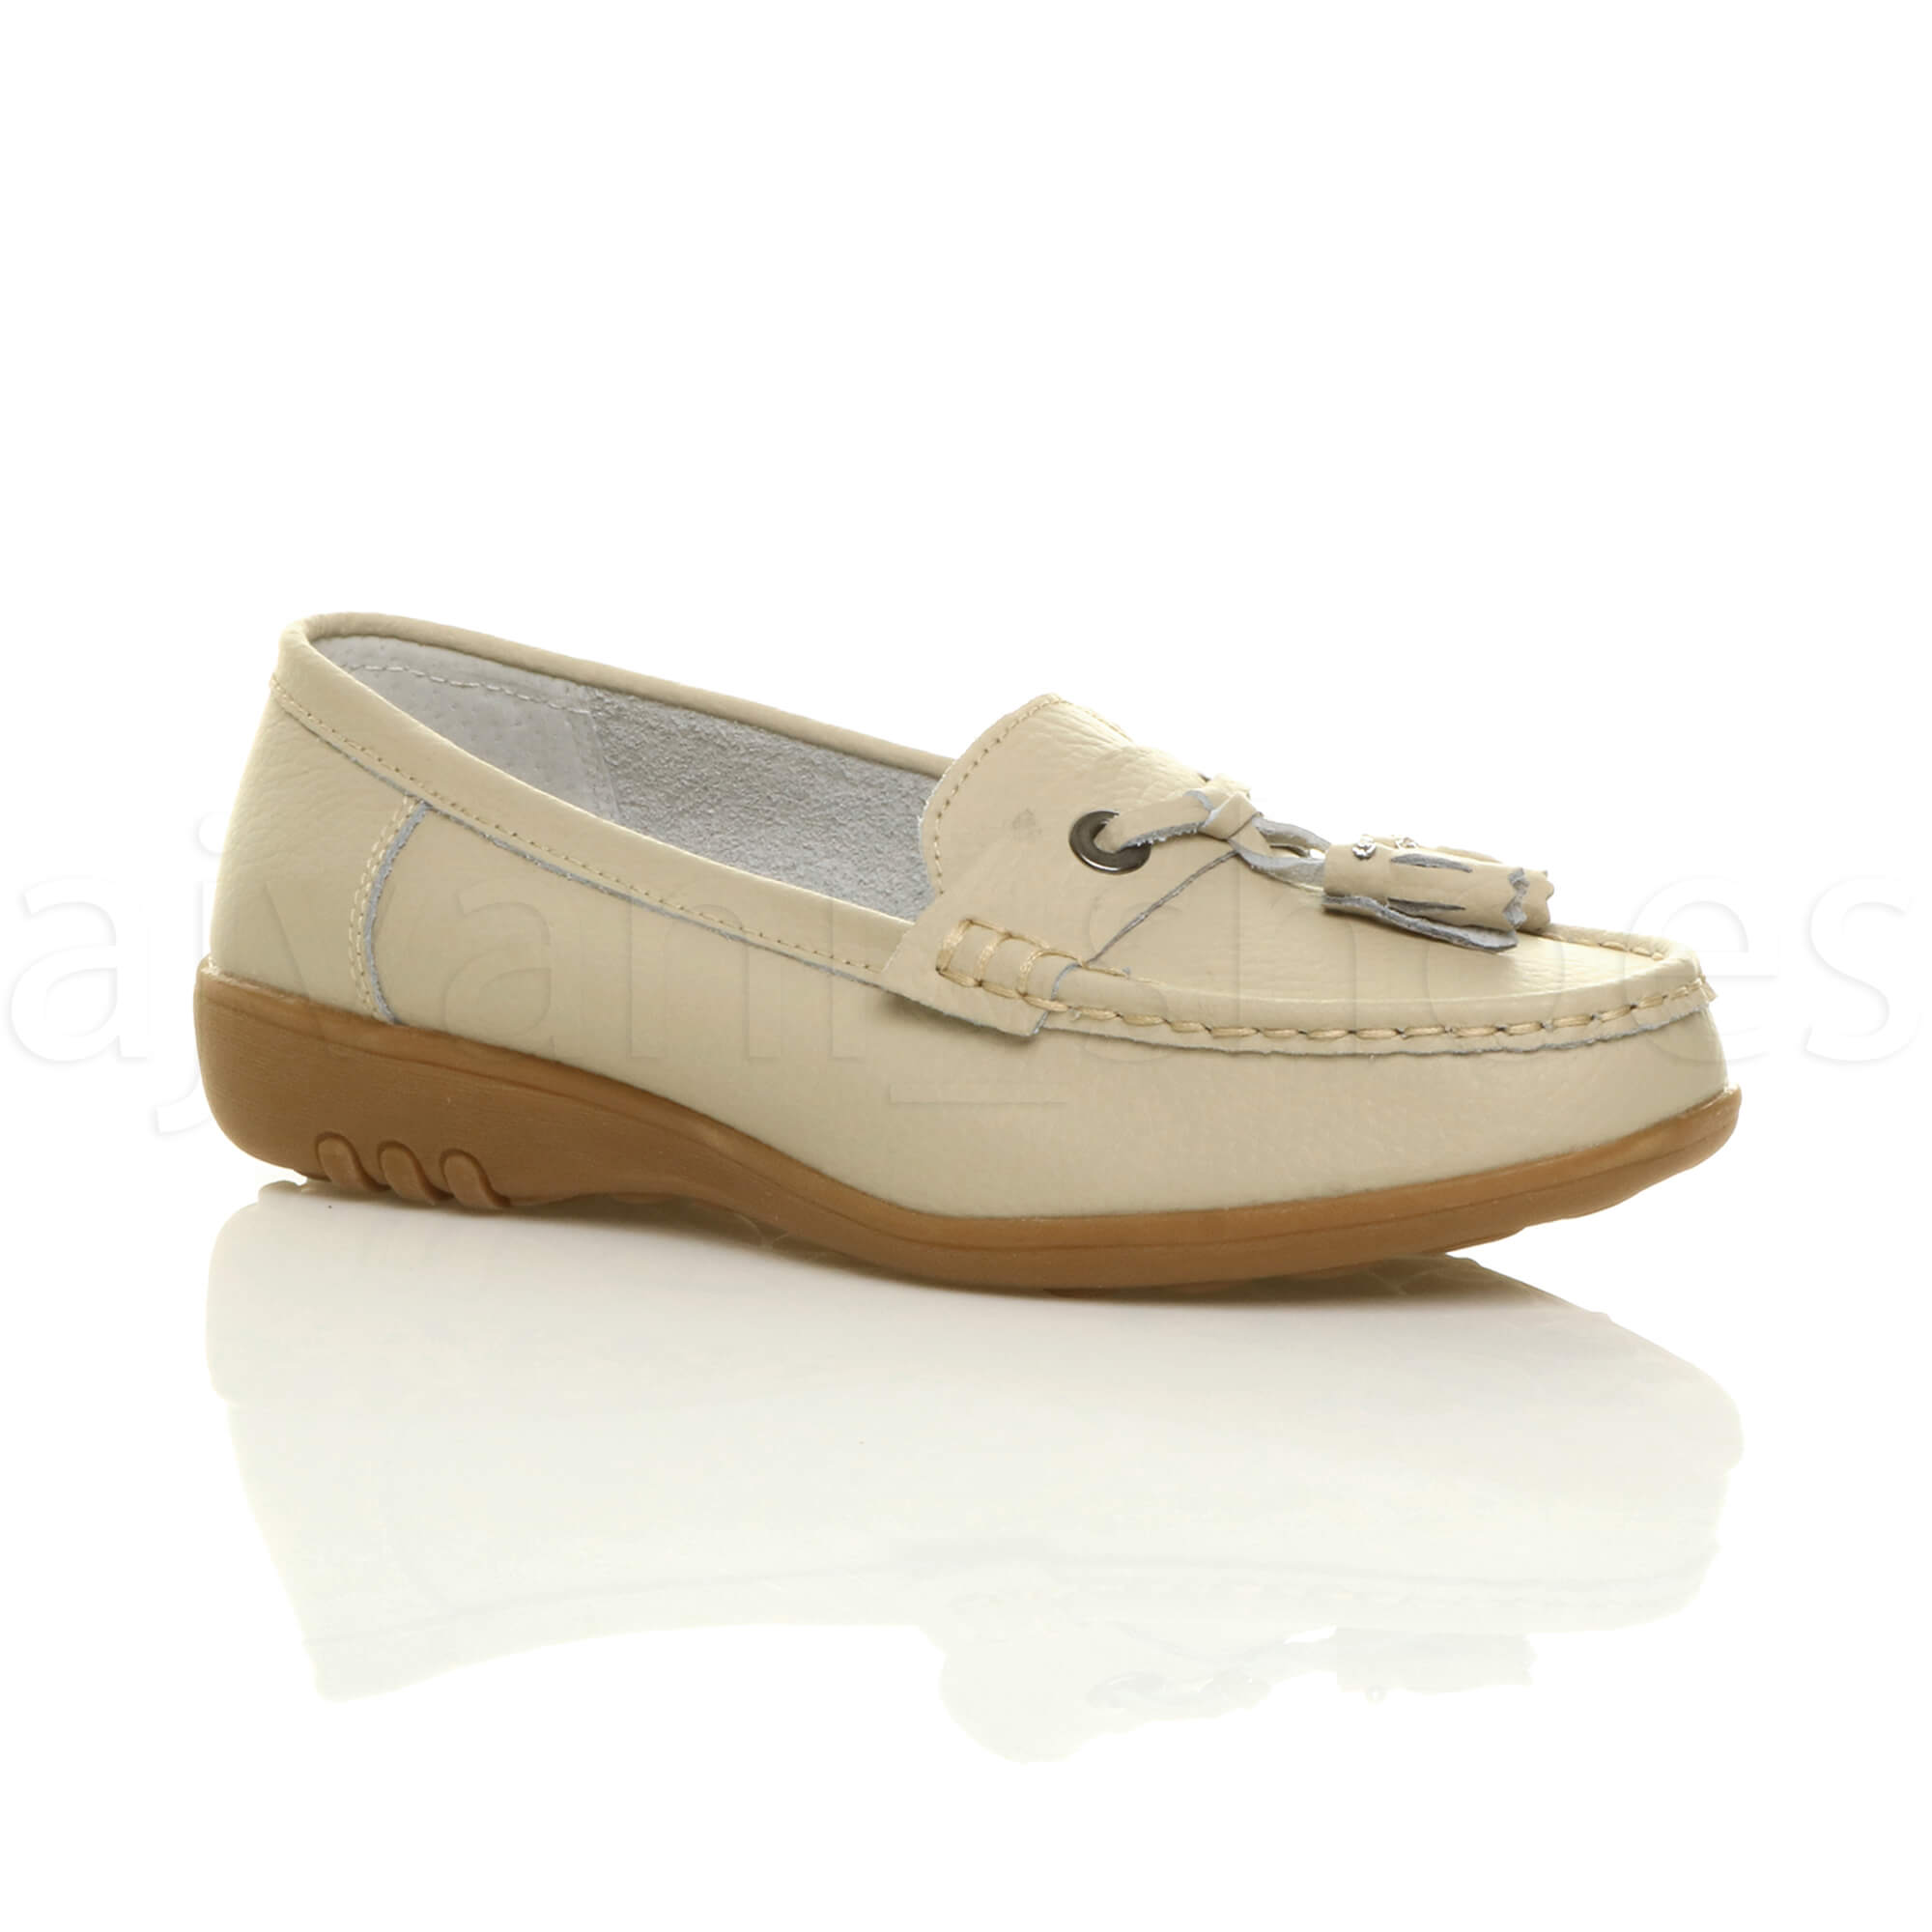 WOMENS-LADIES-LOW-HEEL-WEDGE-LEATHER-TASSEL-LOAFERS-COMFORT-MOCCASINS-SHOES-SIZE thumbnail 2